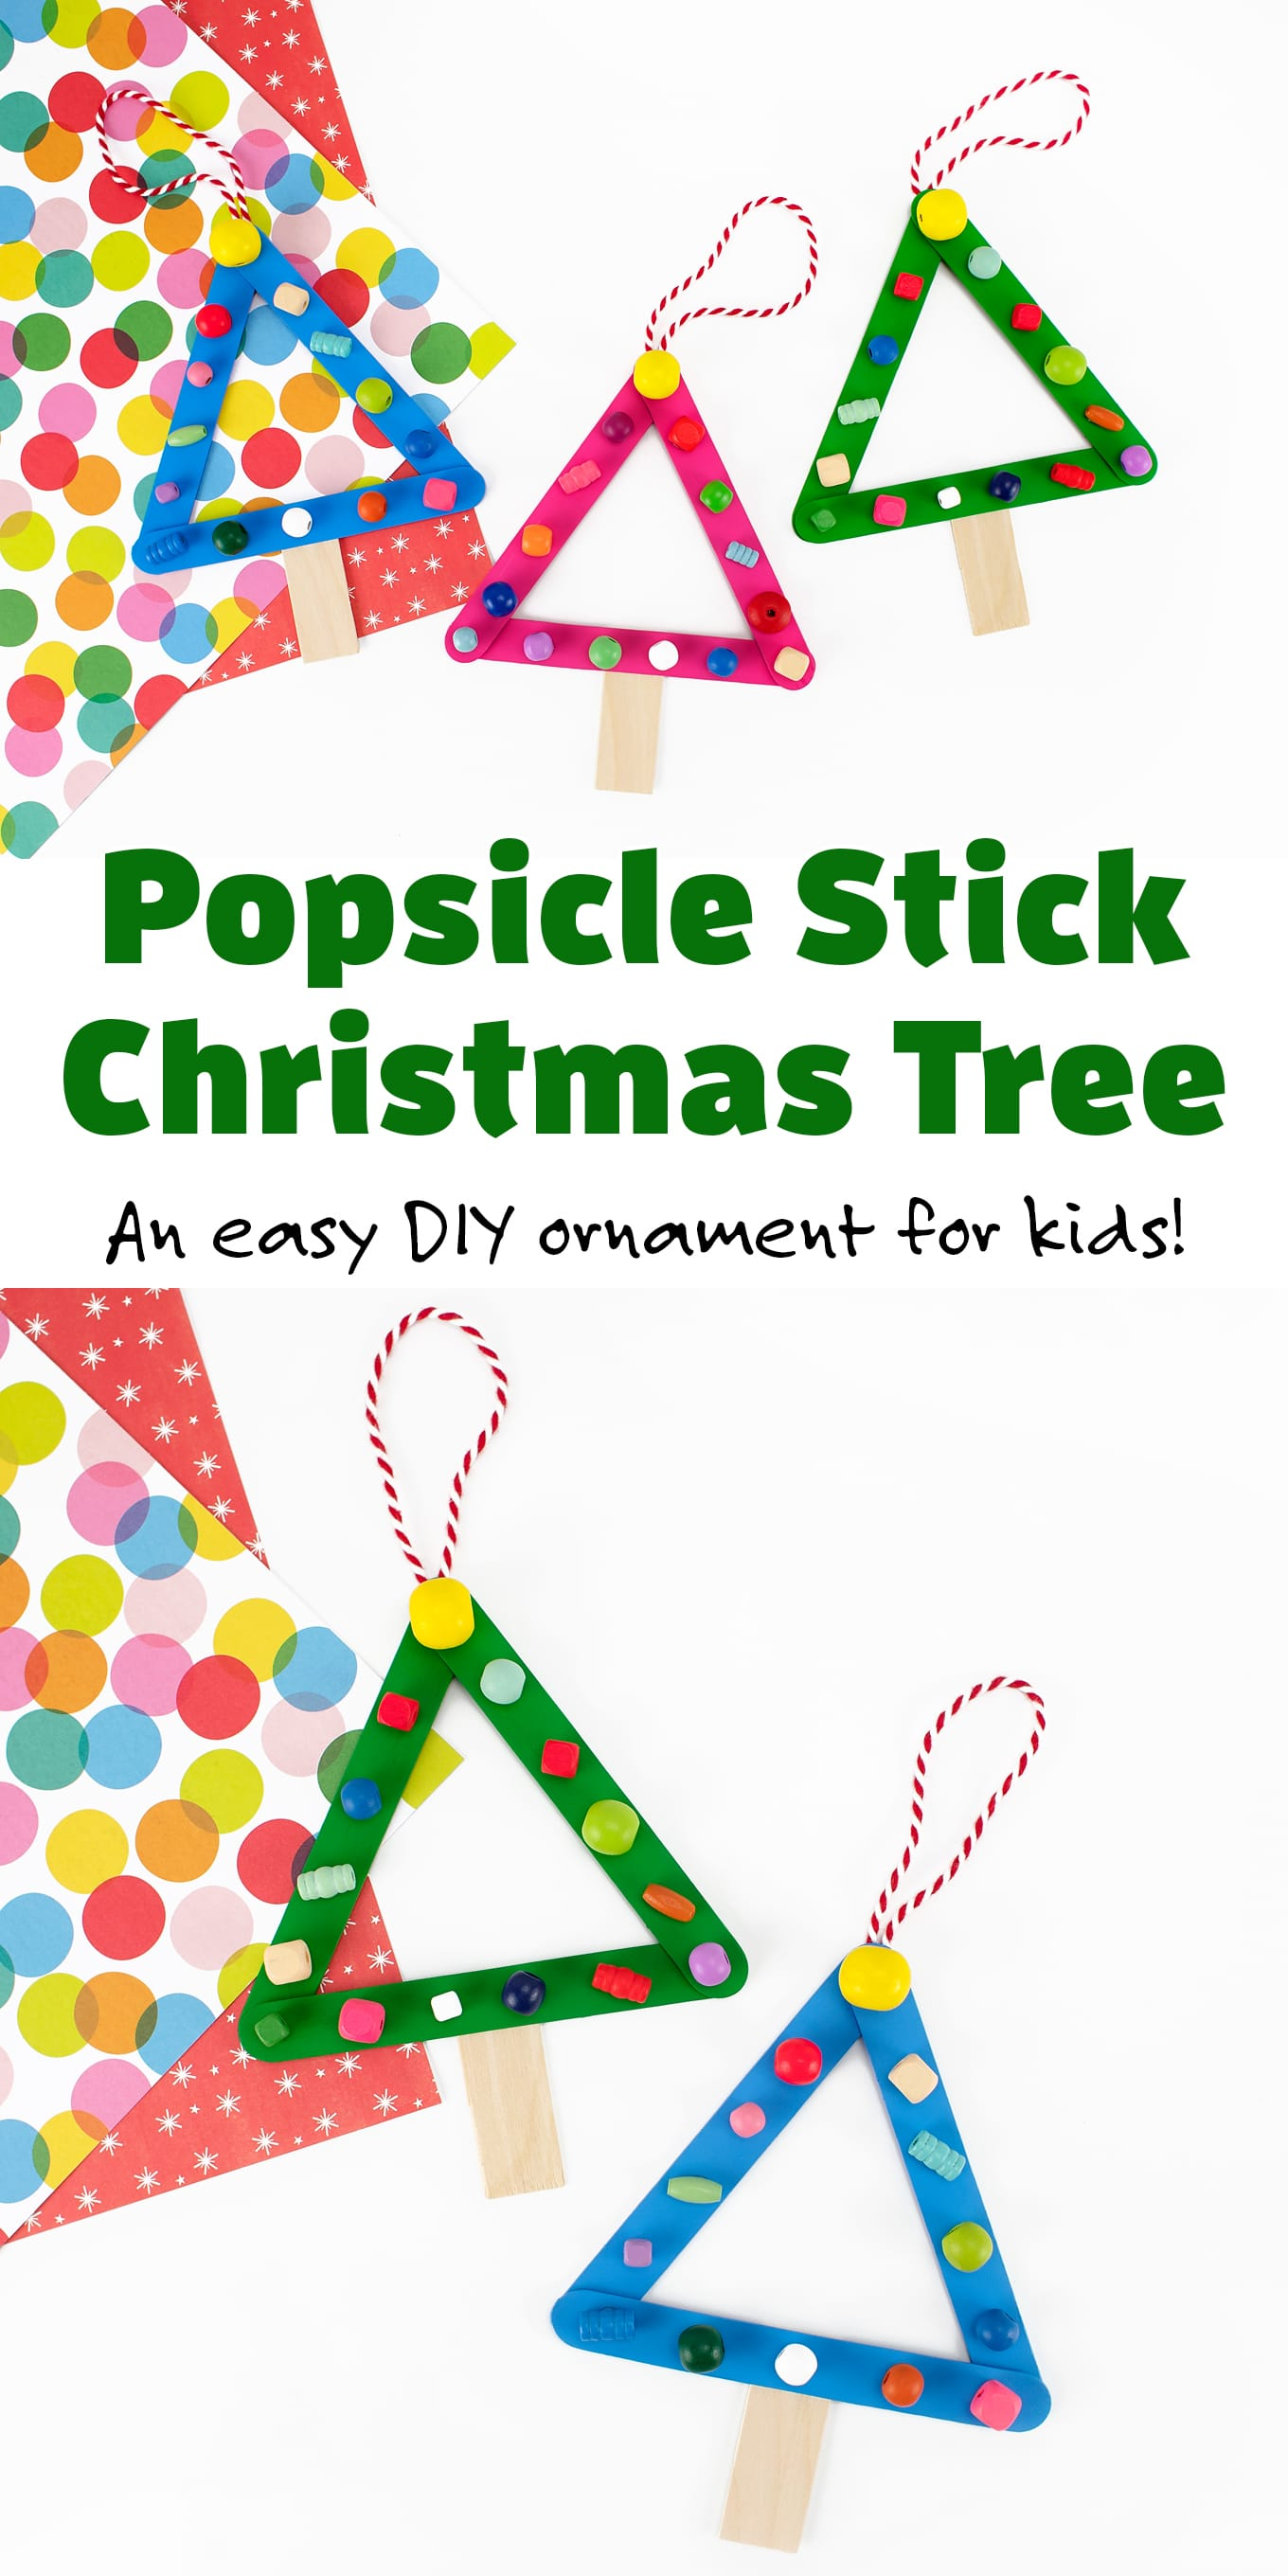 Popsicle Stick Christmas Tree - Made with basic, inexpensive craft supplies, this Popsicle Stick Christmas Tree is the perfect DIY ornament for classroom holiday parties, community Christmas programs, preschool, Scouting, and more! via @firefliesandmudpies